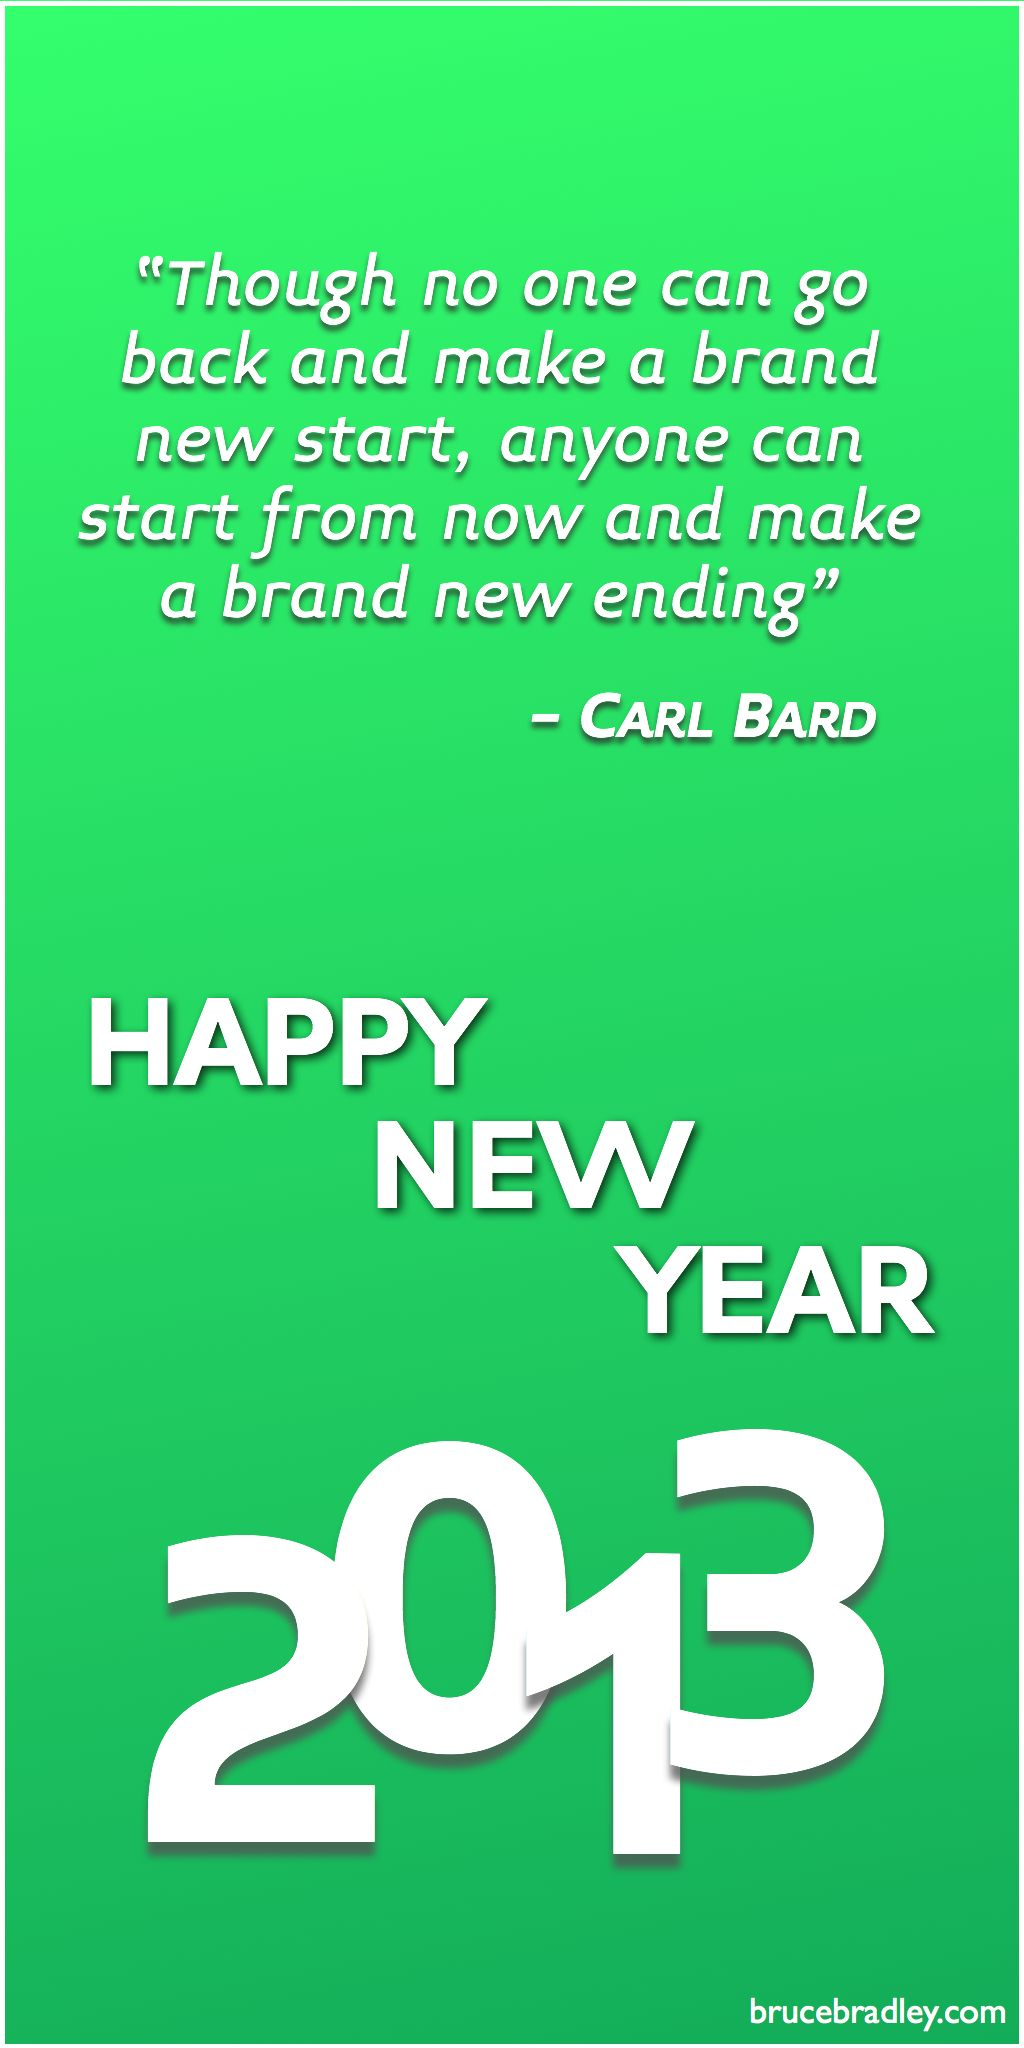 A quote from Carl Bard for some New Year's inspiration